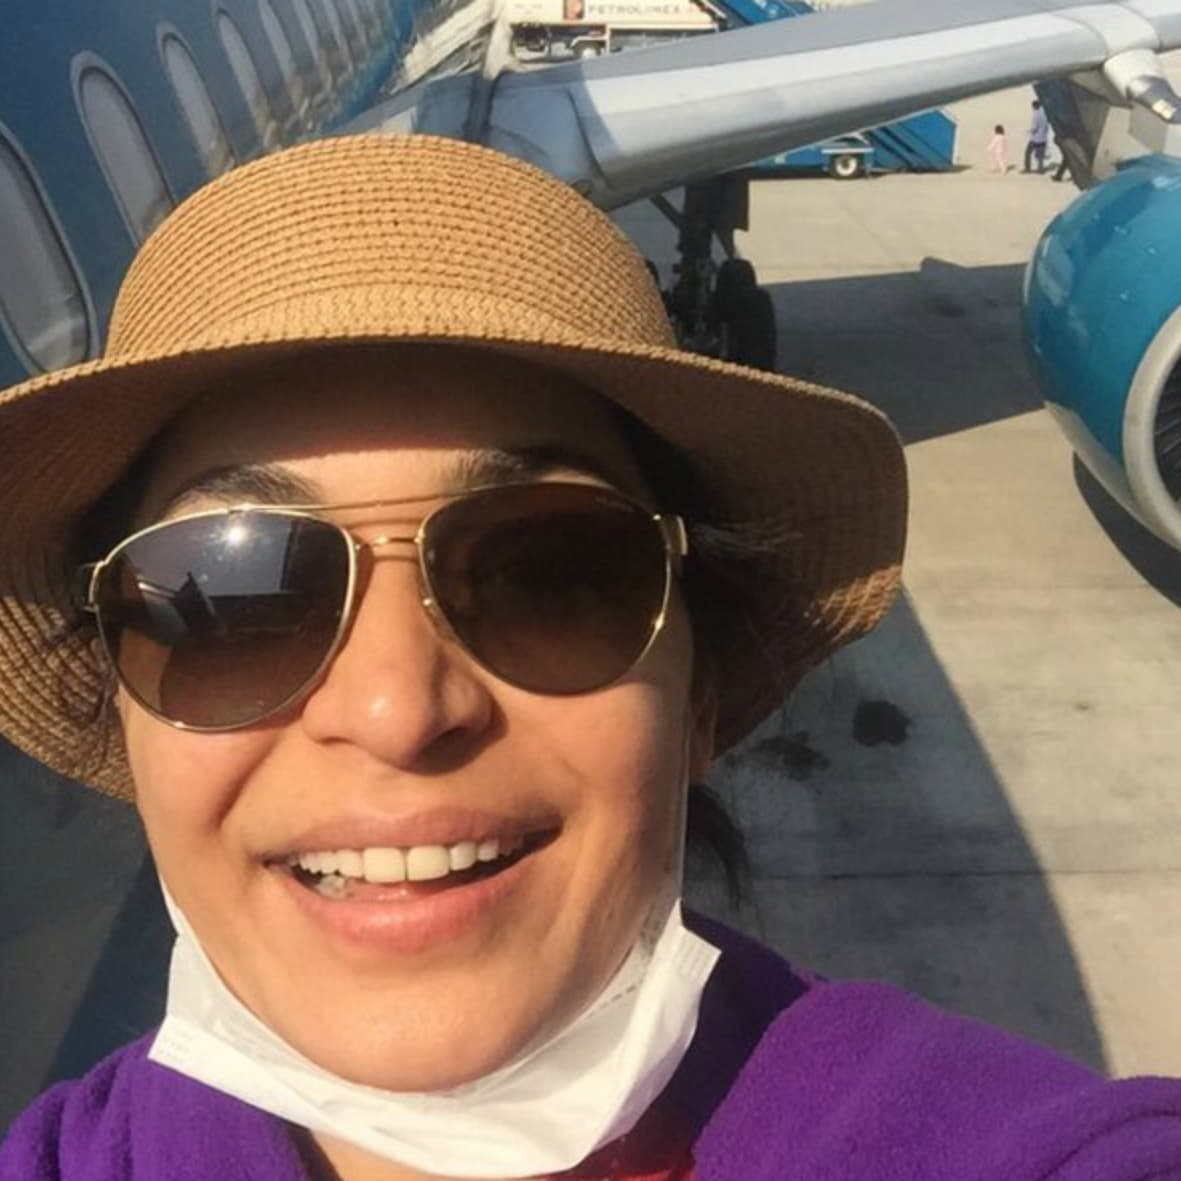 Meera about to board her flight. Photo: Twitter